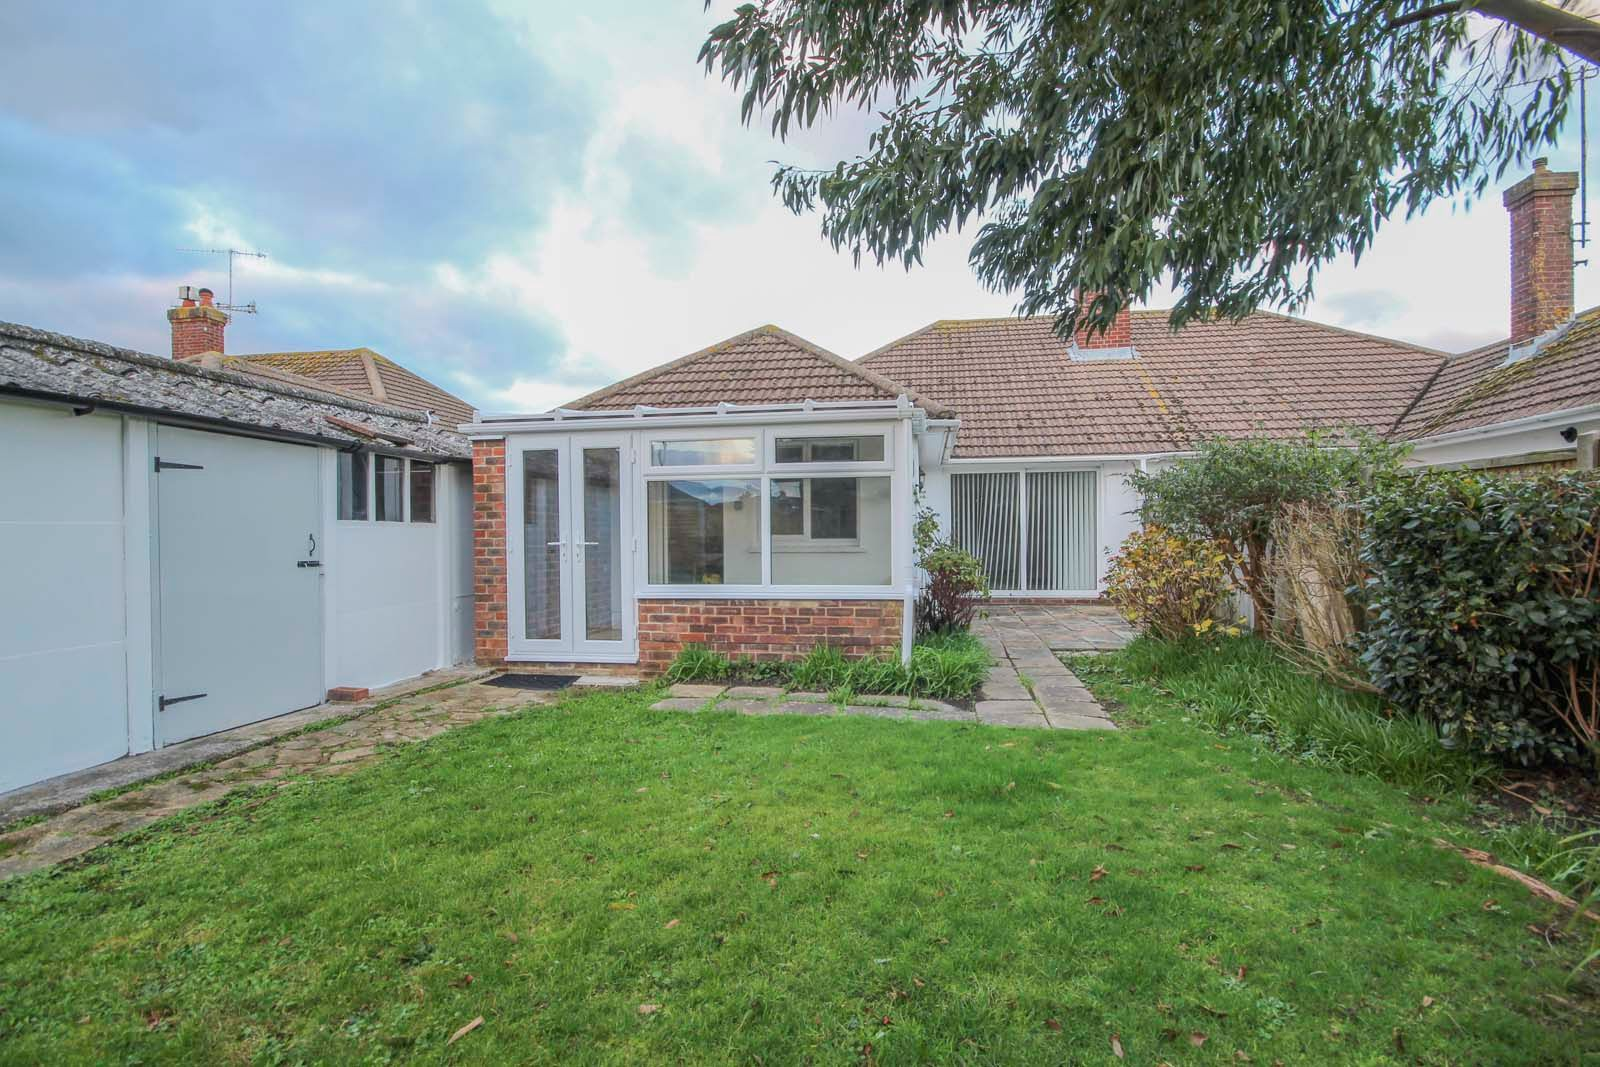 3 bed bungalow for sale in Hillview Crescent COMP MAY 2019  - Property Image 3